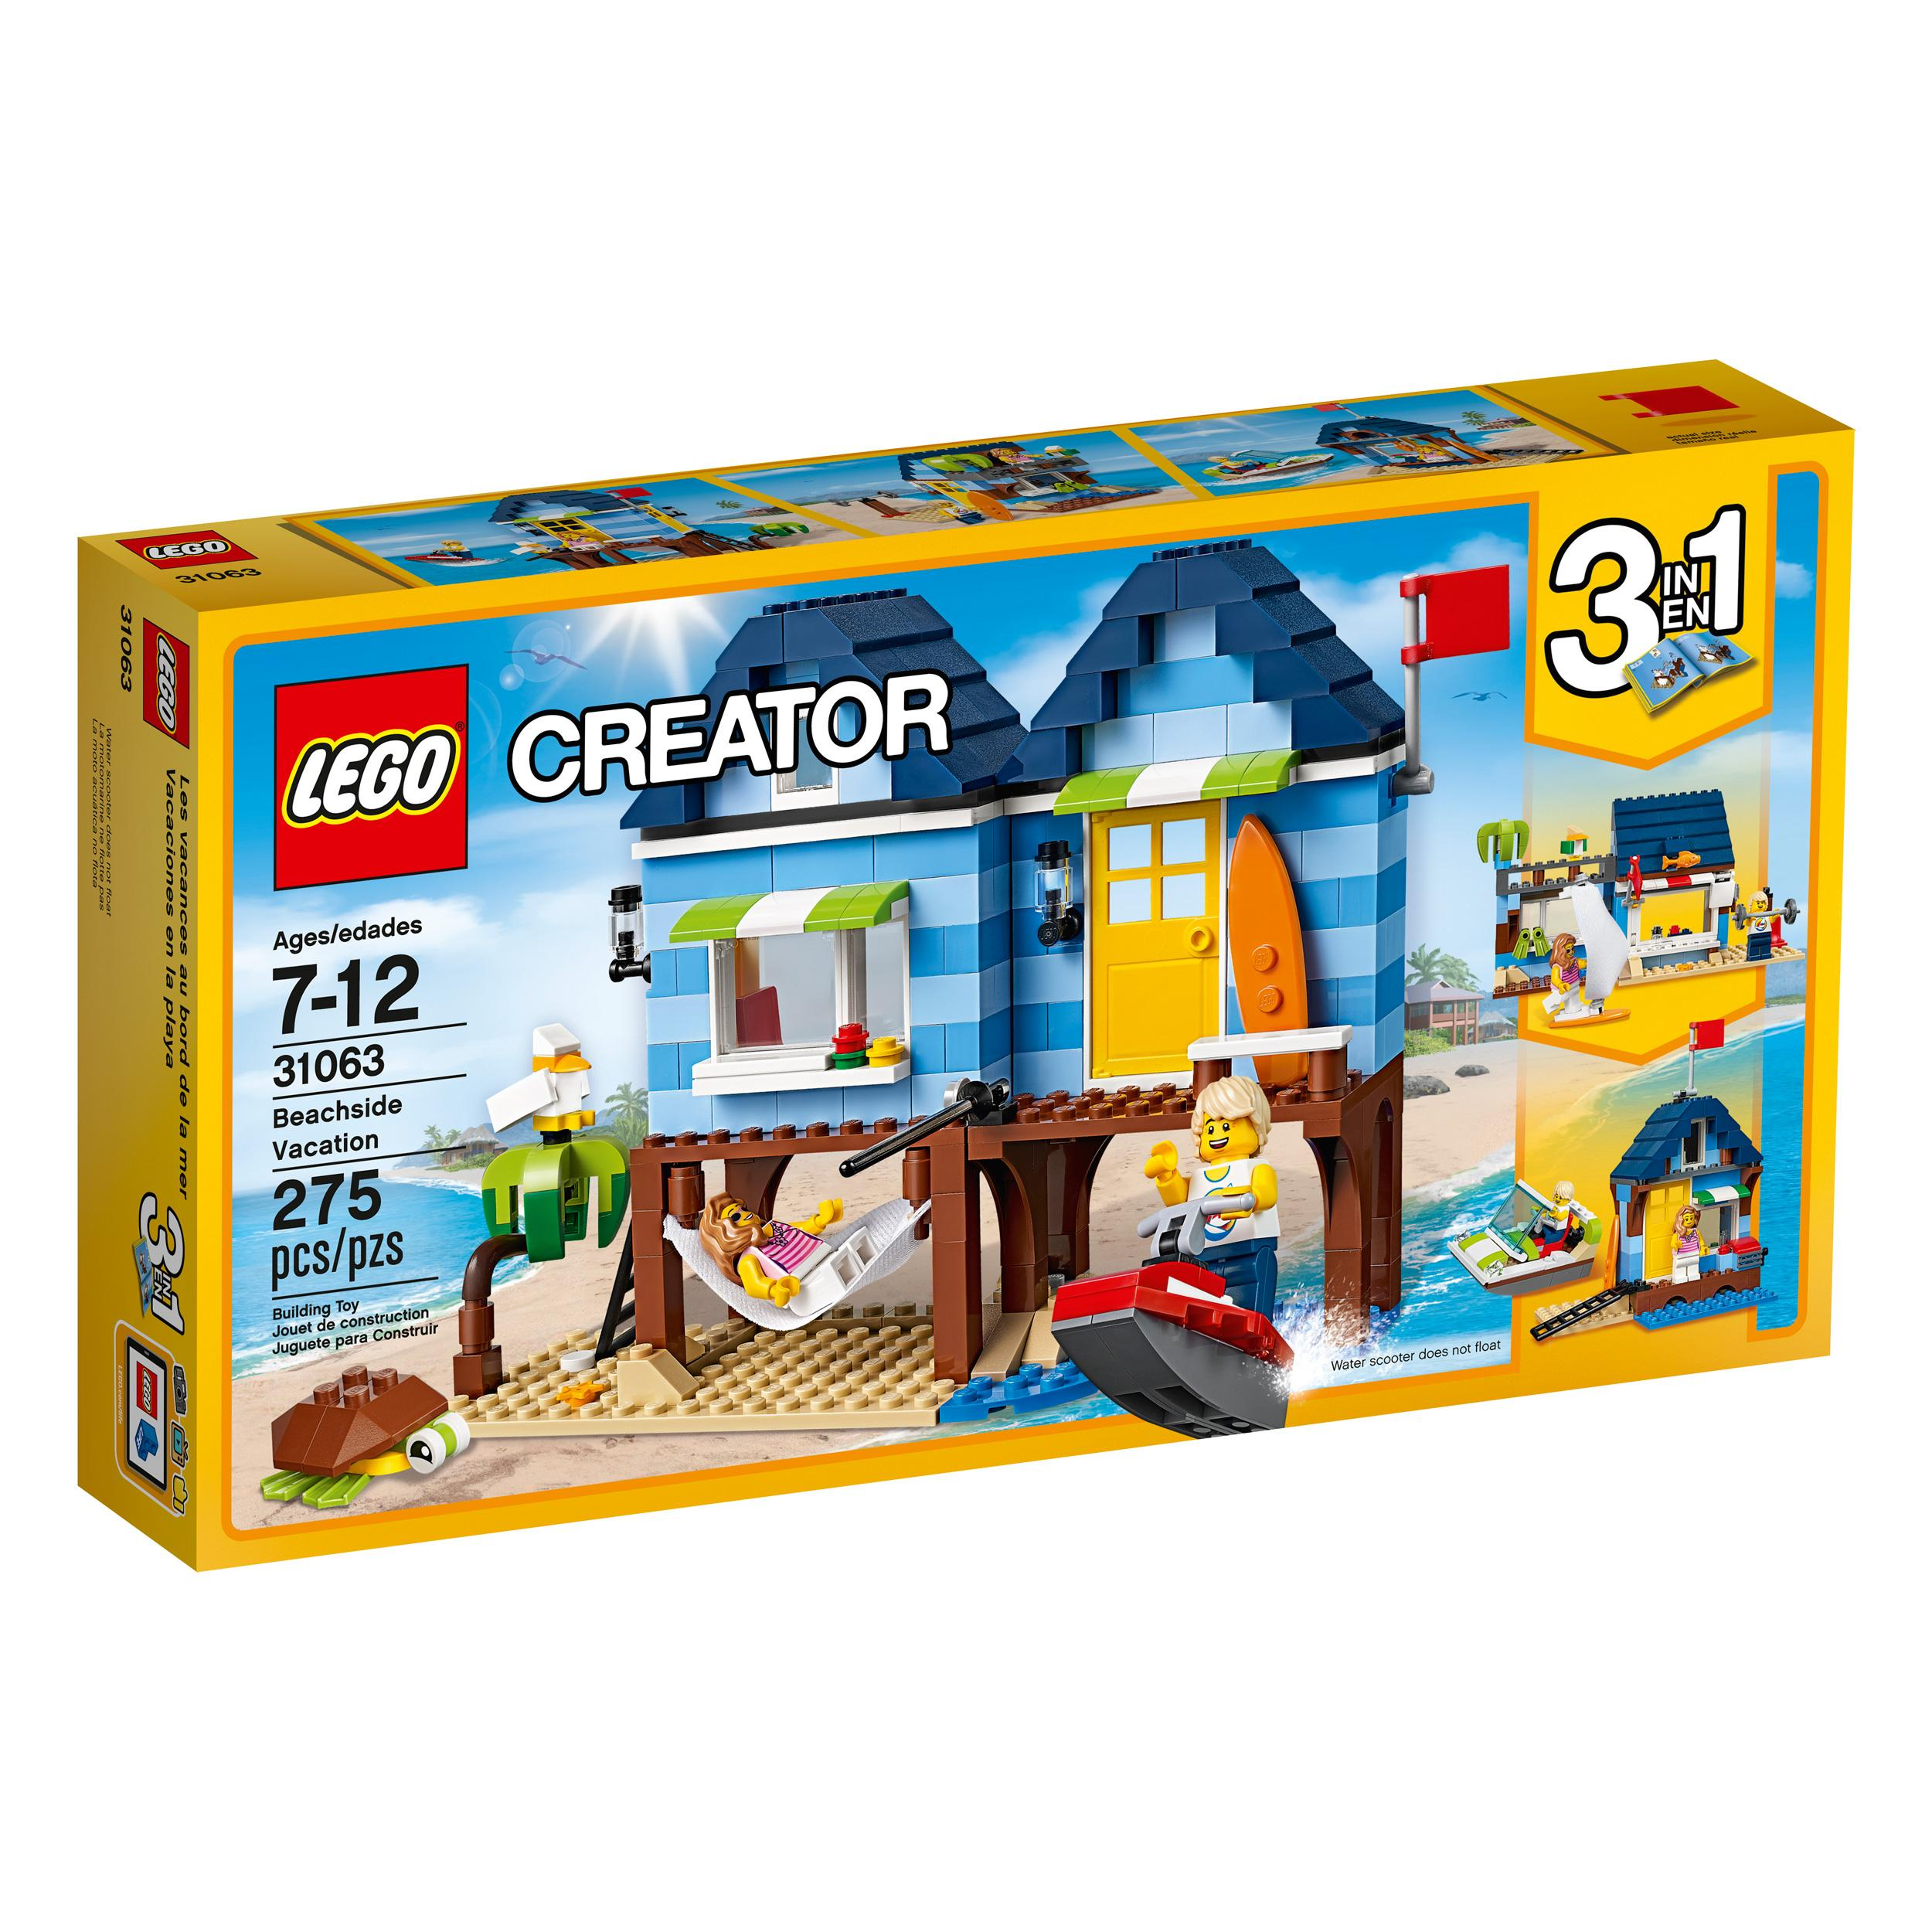 Charming LEGO Friends. The tree house set comes with one LEGO mini-doll figure of Olivia. Olivia is a curious and inventive girl. She loves observing the stars and surroundings through her telescope and making improvements to her tree house.